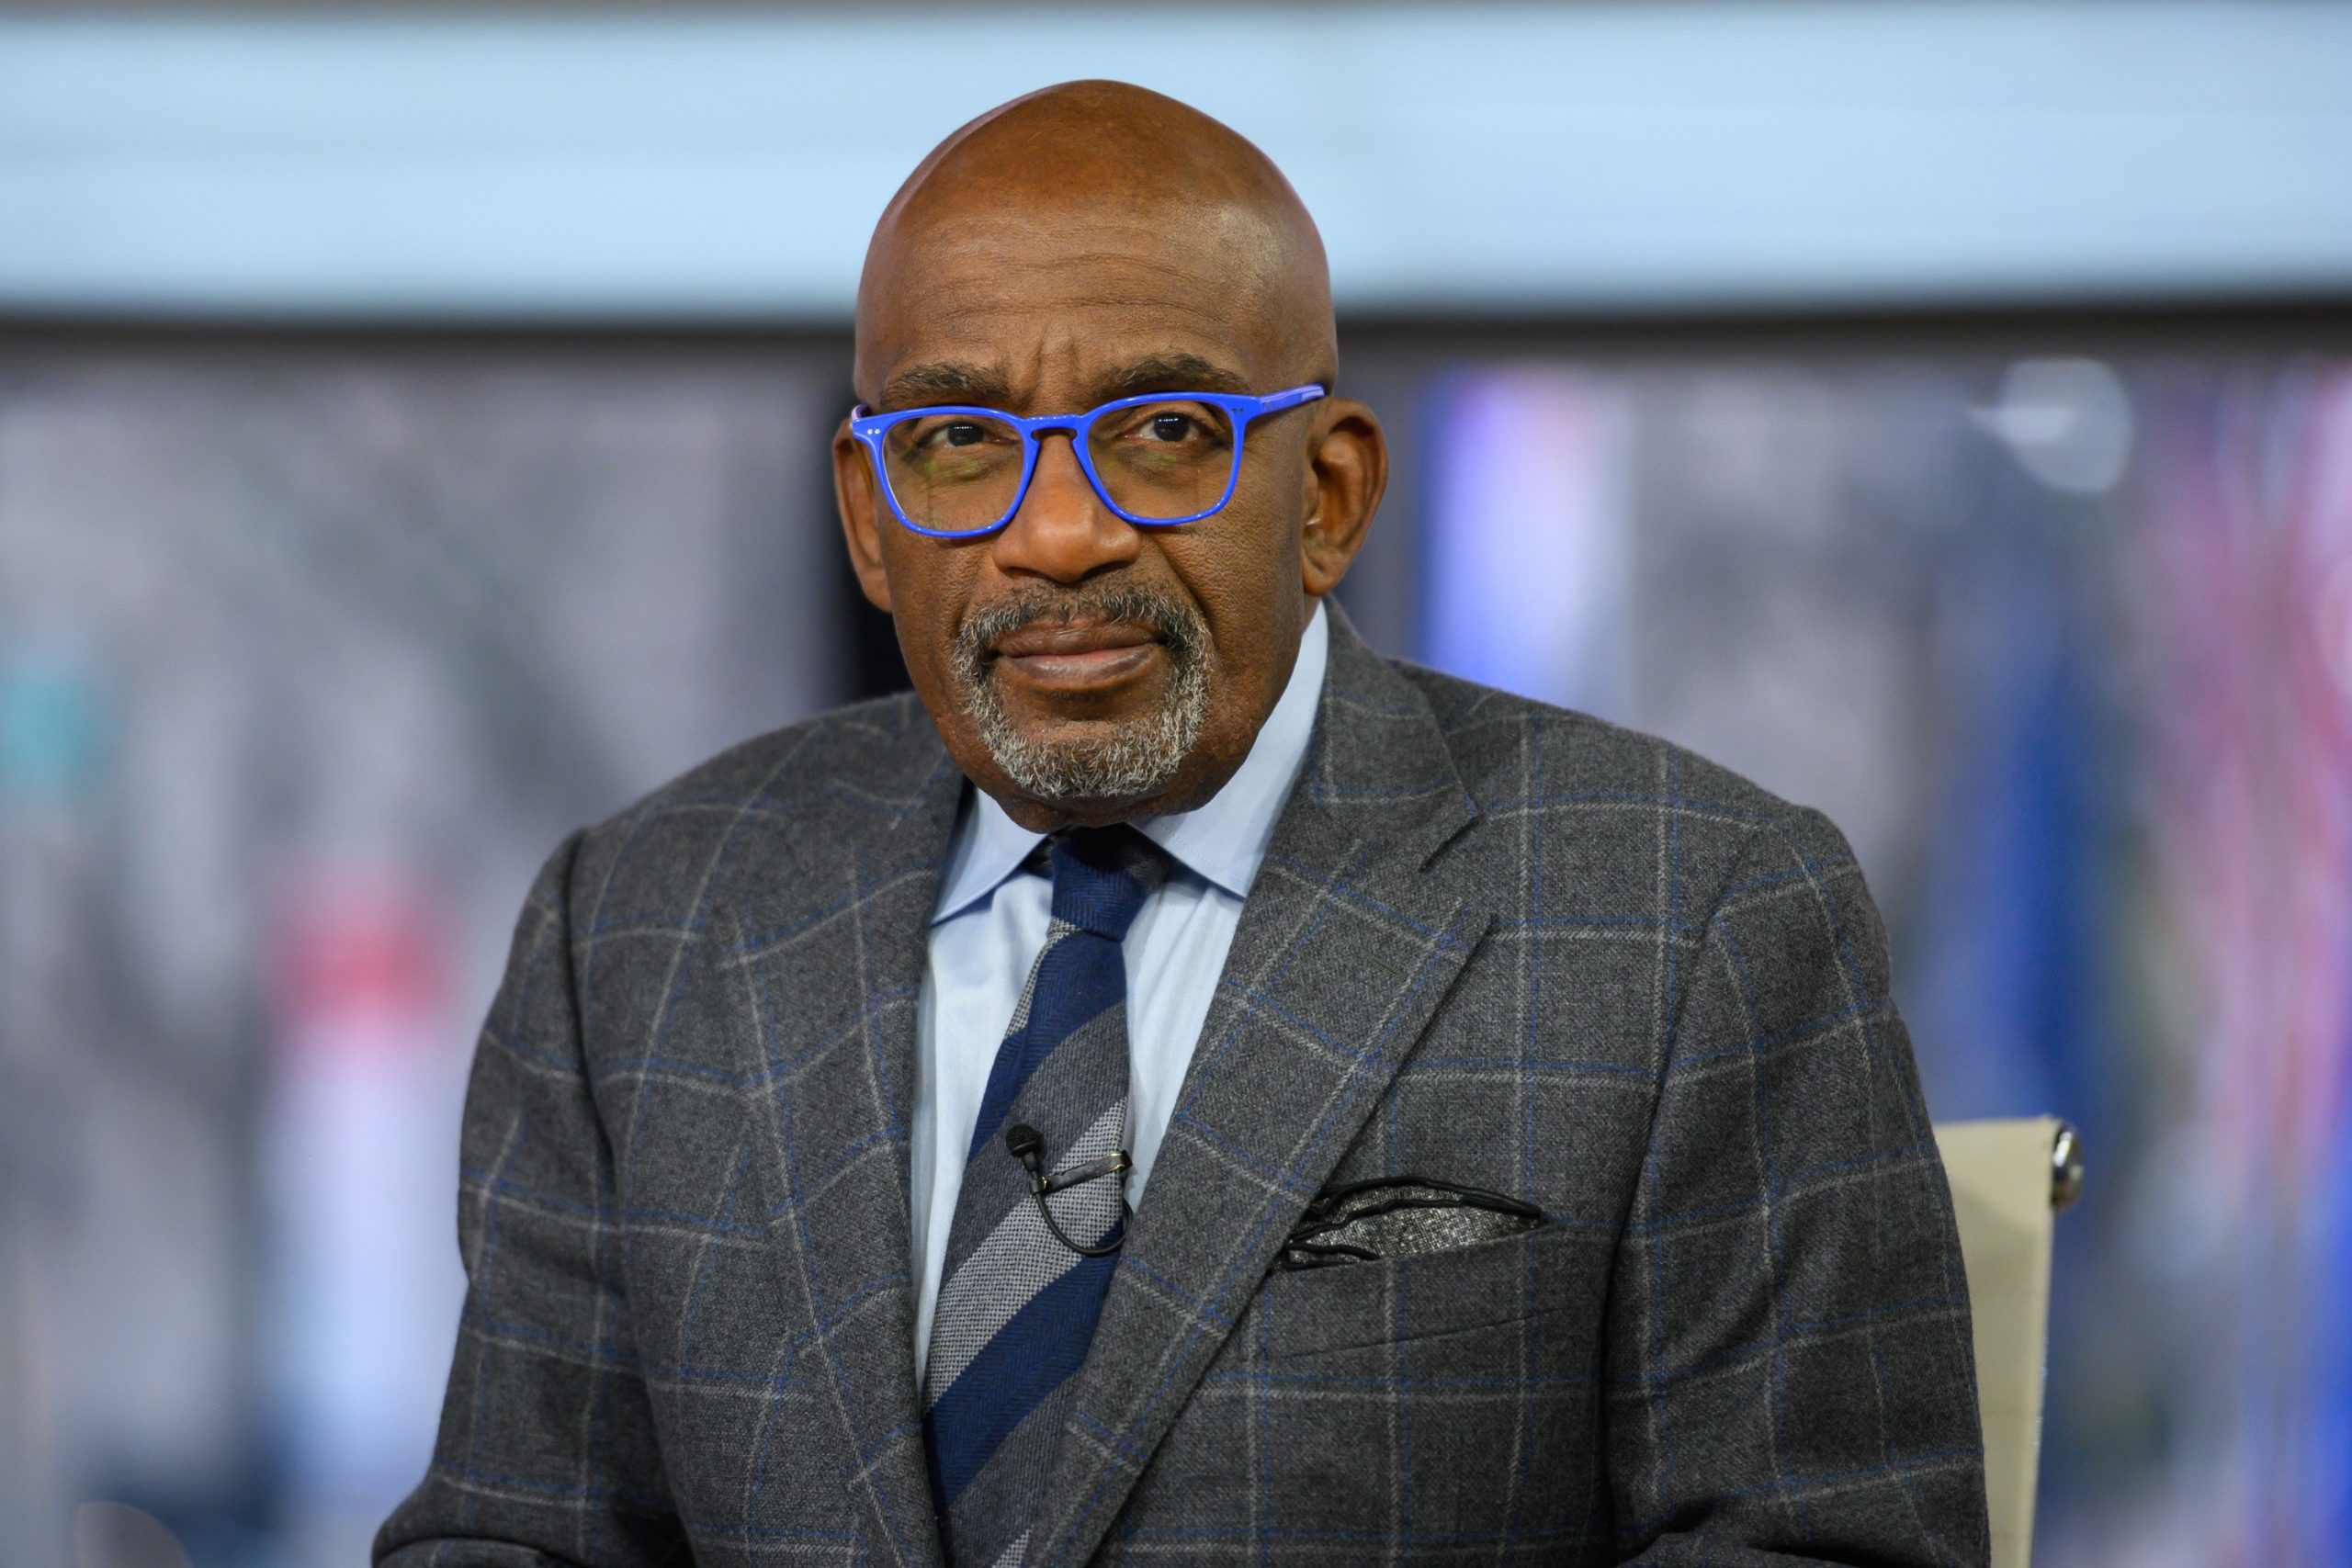 NBC's Al Roker Announces He Has Prostate Cancer on Today Show